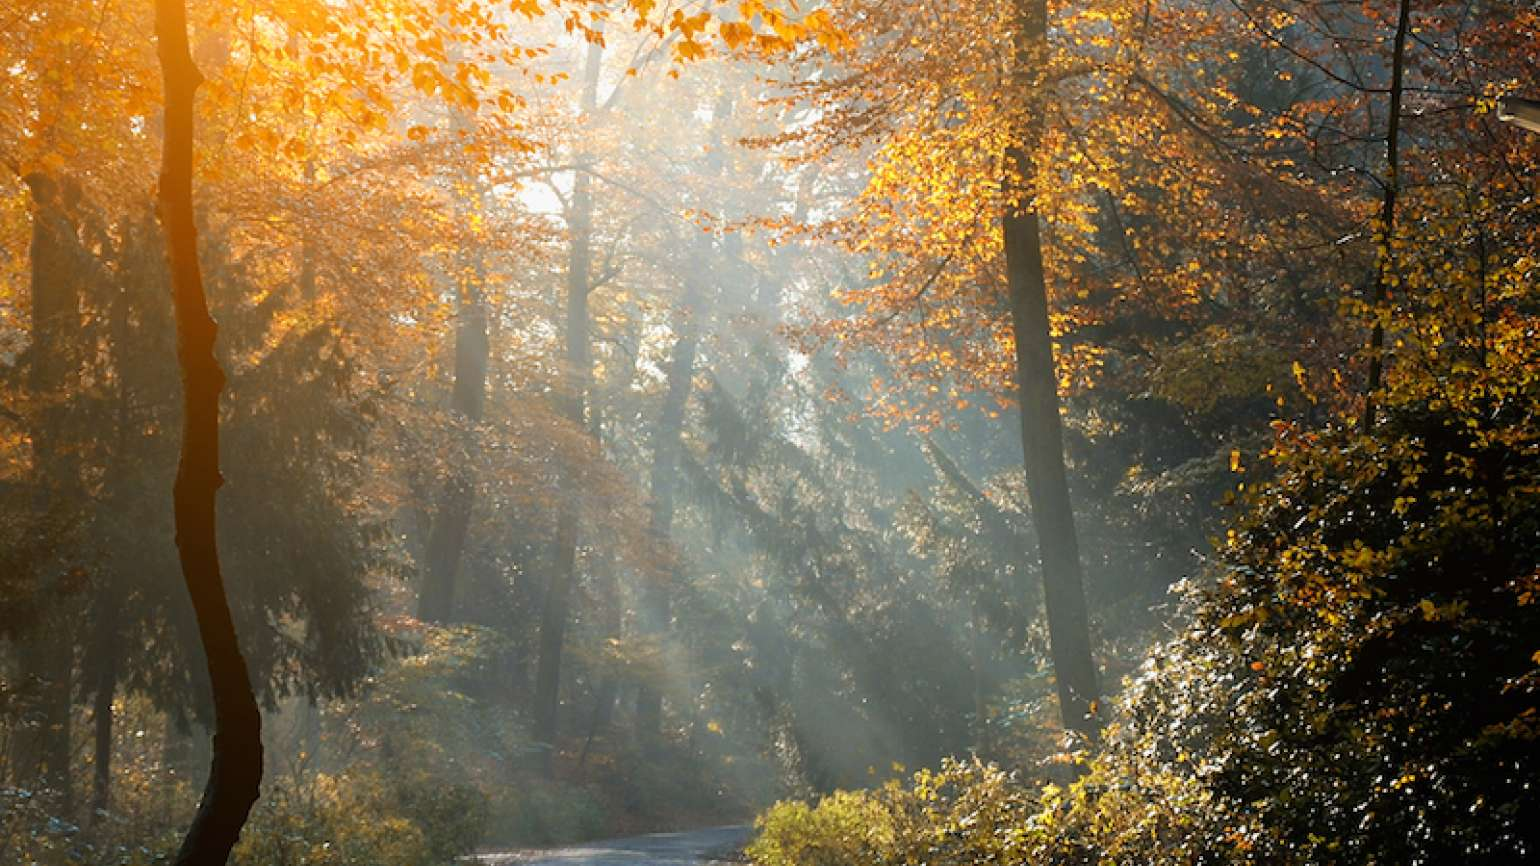 A scene filled with light. Photo by Balazs Kovacs Images for Shutterstock.